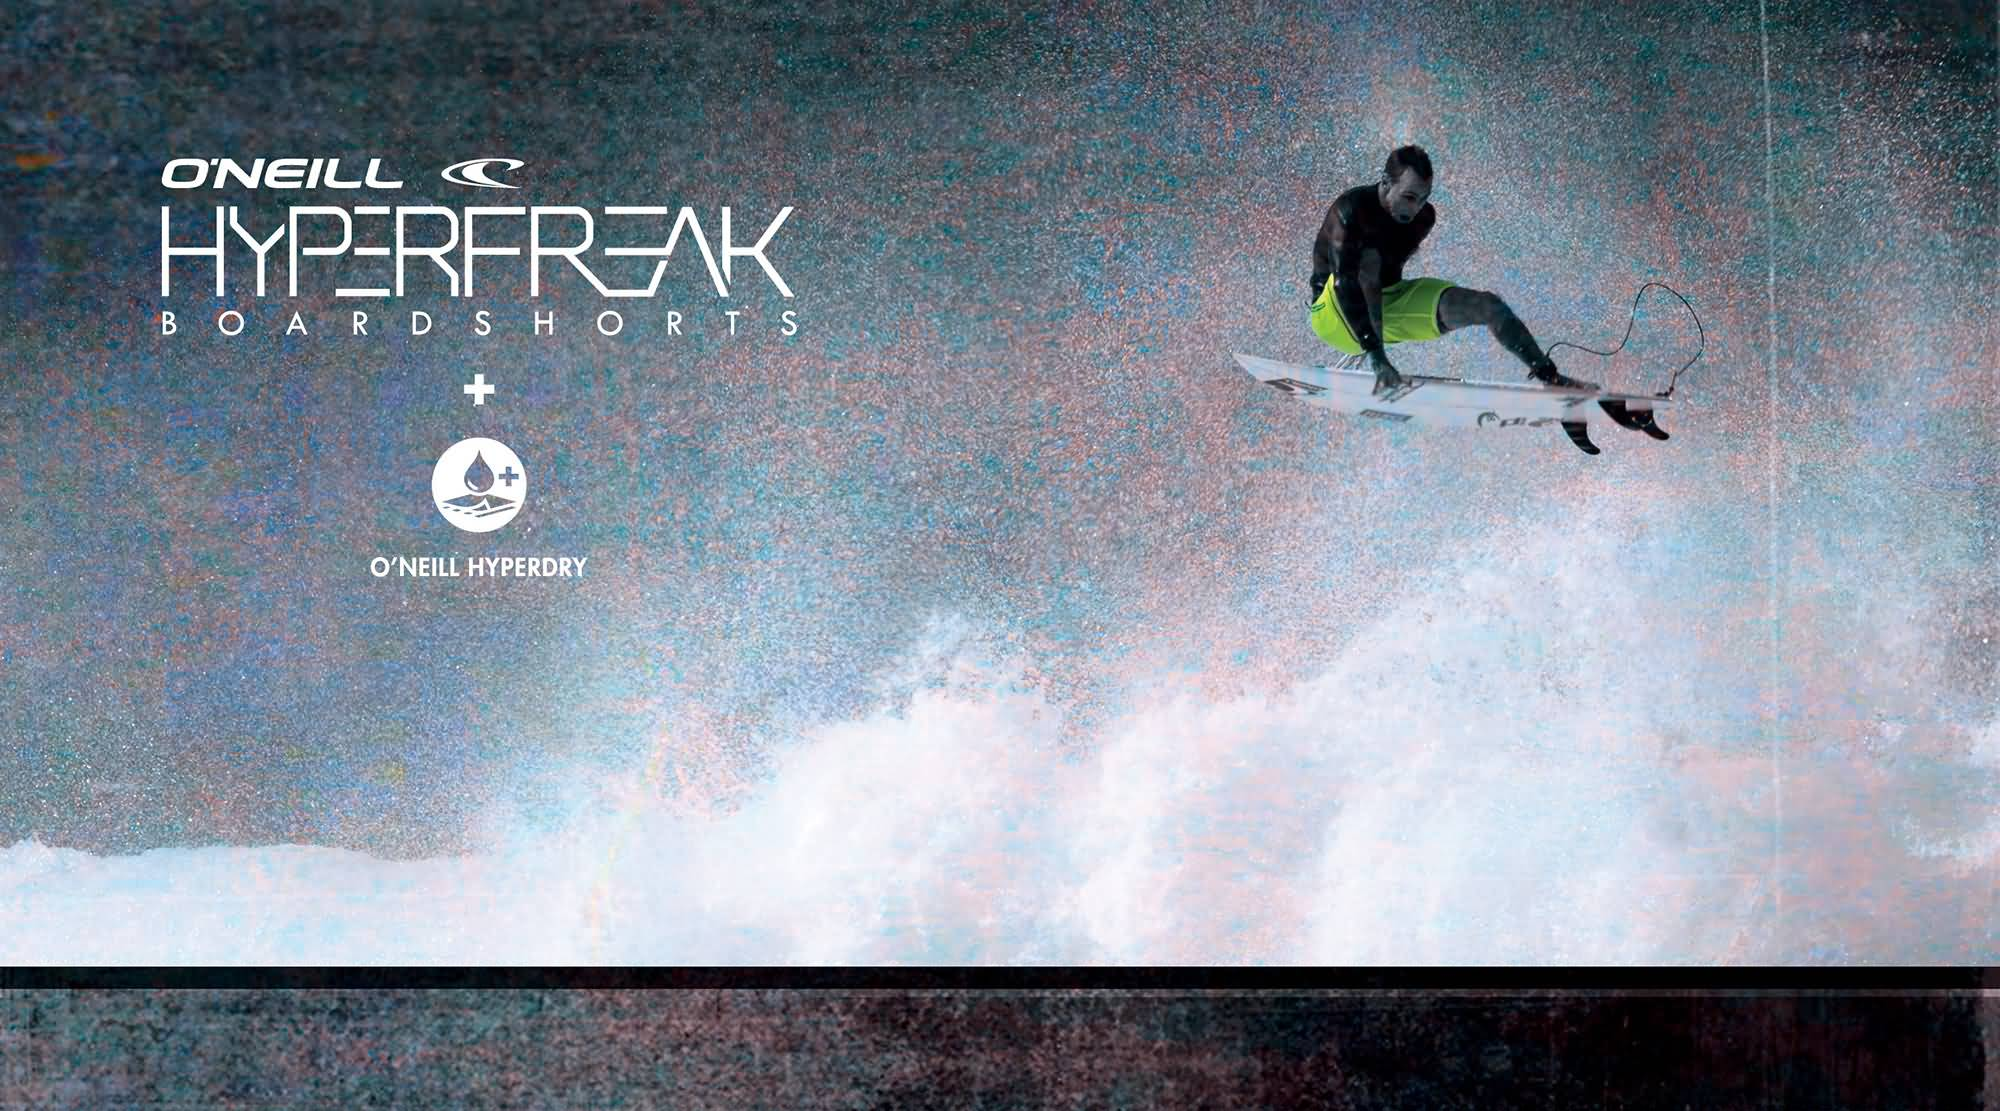 O'neill Surf 2017 Hyperfreak Series Surfing Boardshorts Collection